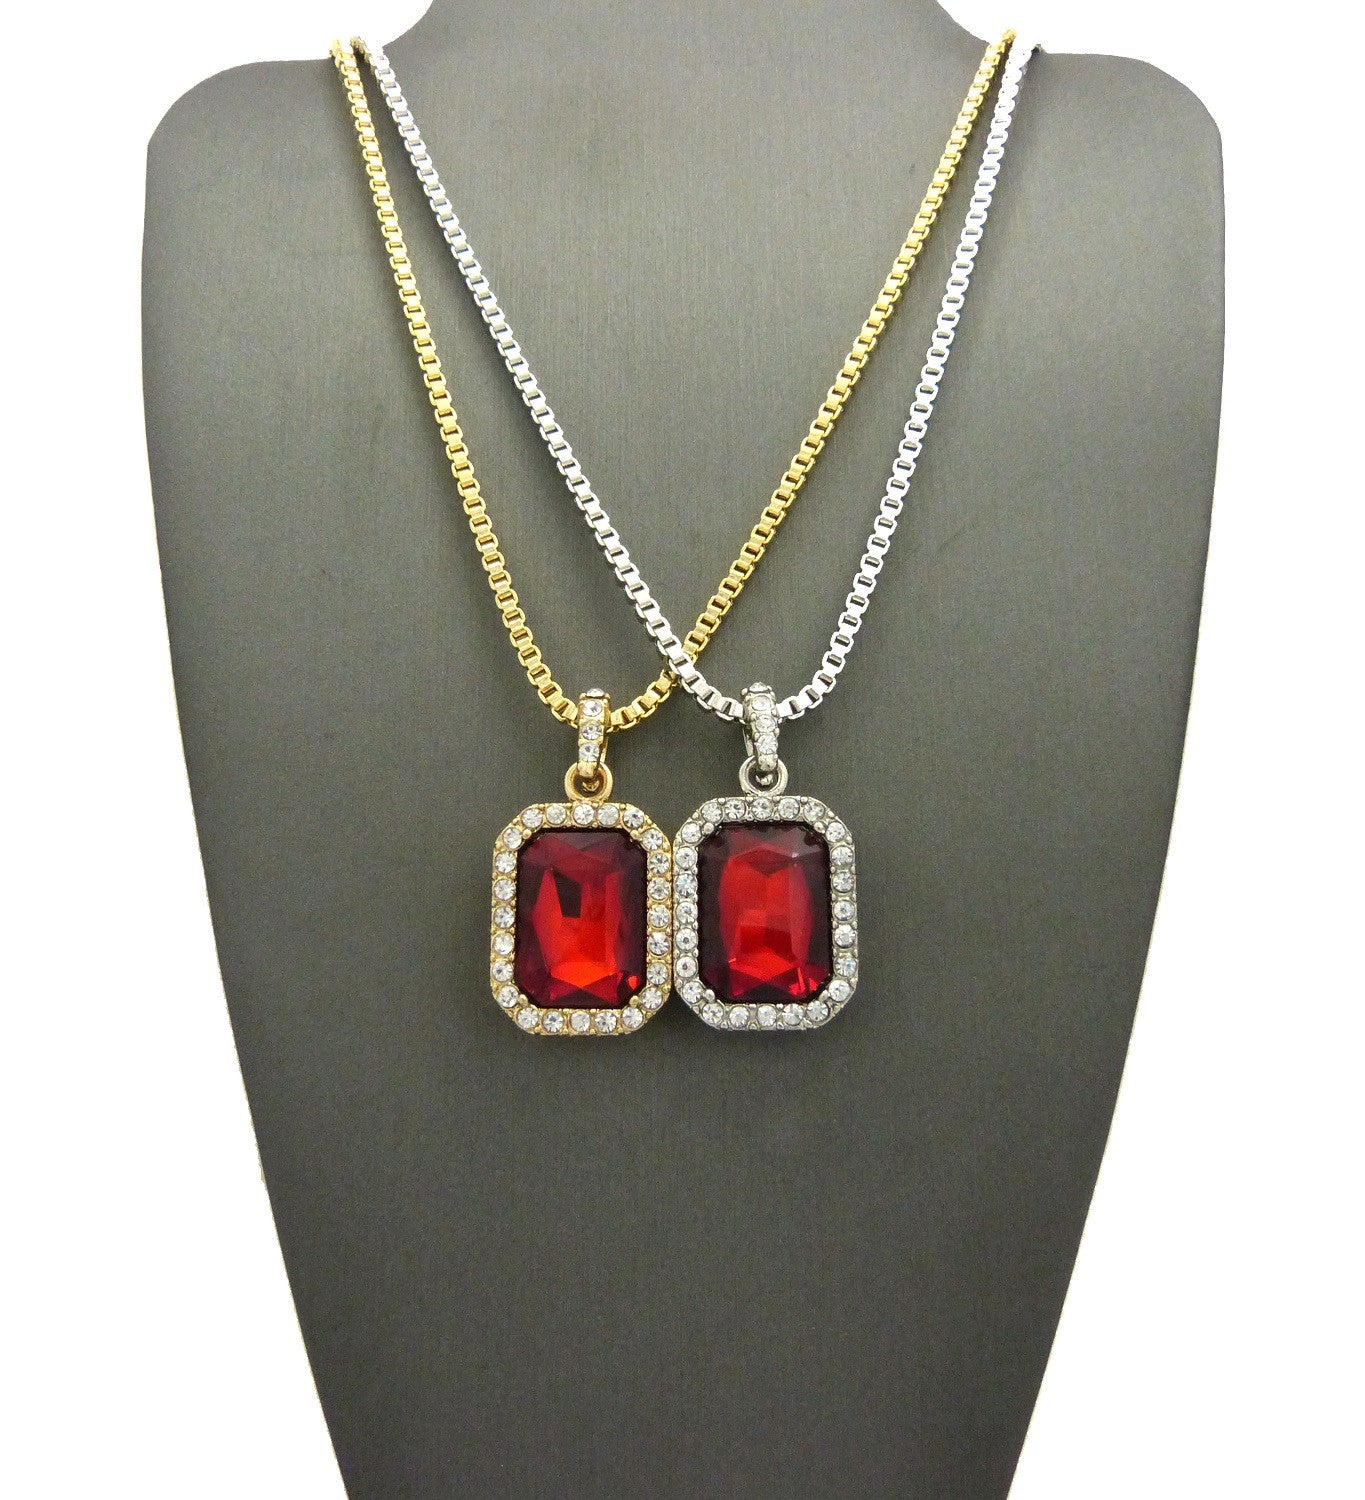 2 Chain Set: Silver and Gold Iced Out Ruby Red Gems